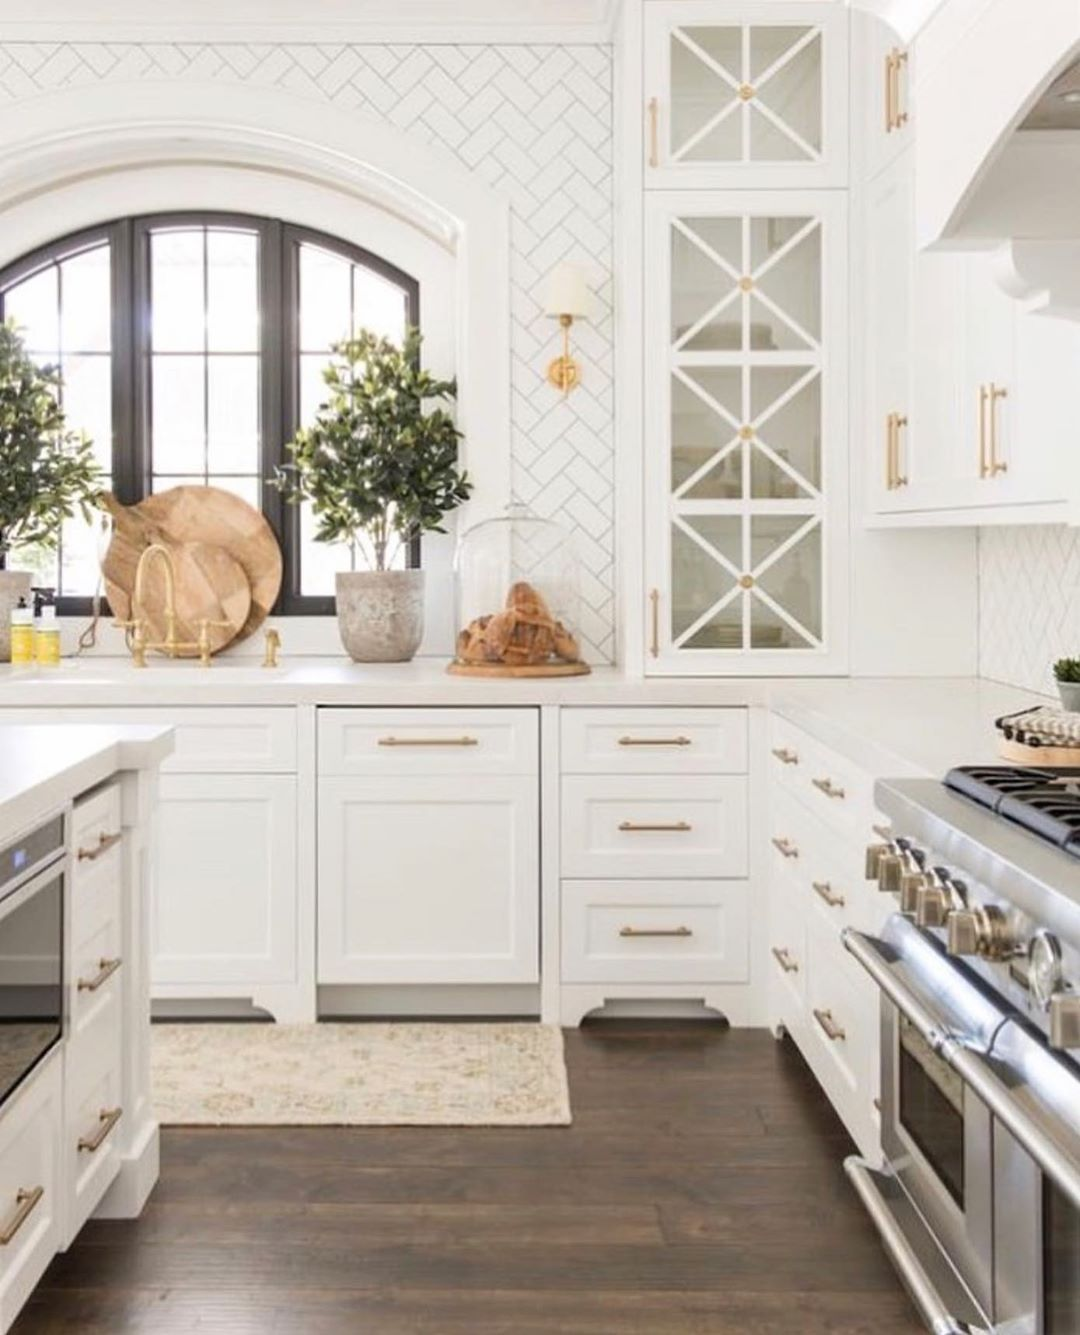 Sheila Maison De Cinq On Instagram It S Official I M In Love With This Kitchen Th Kitchen Cabinets Decor Kitchen Inspiration Design Kitchen Inspirations